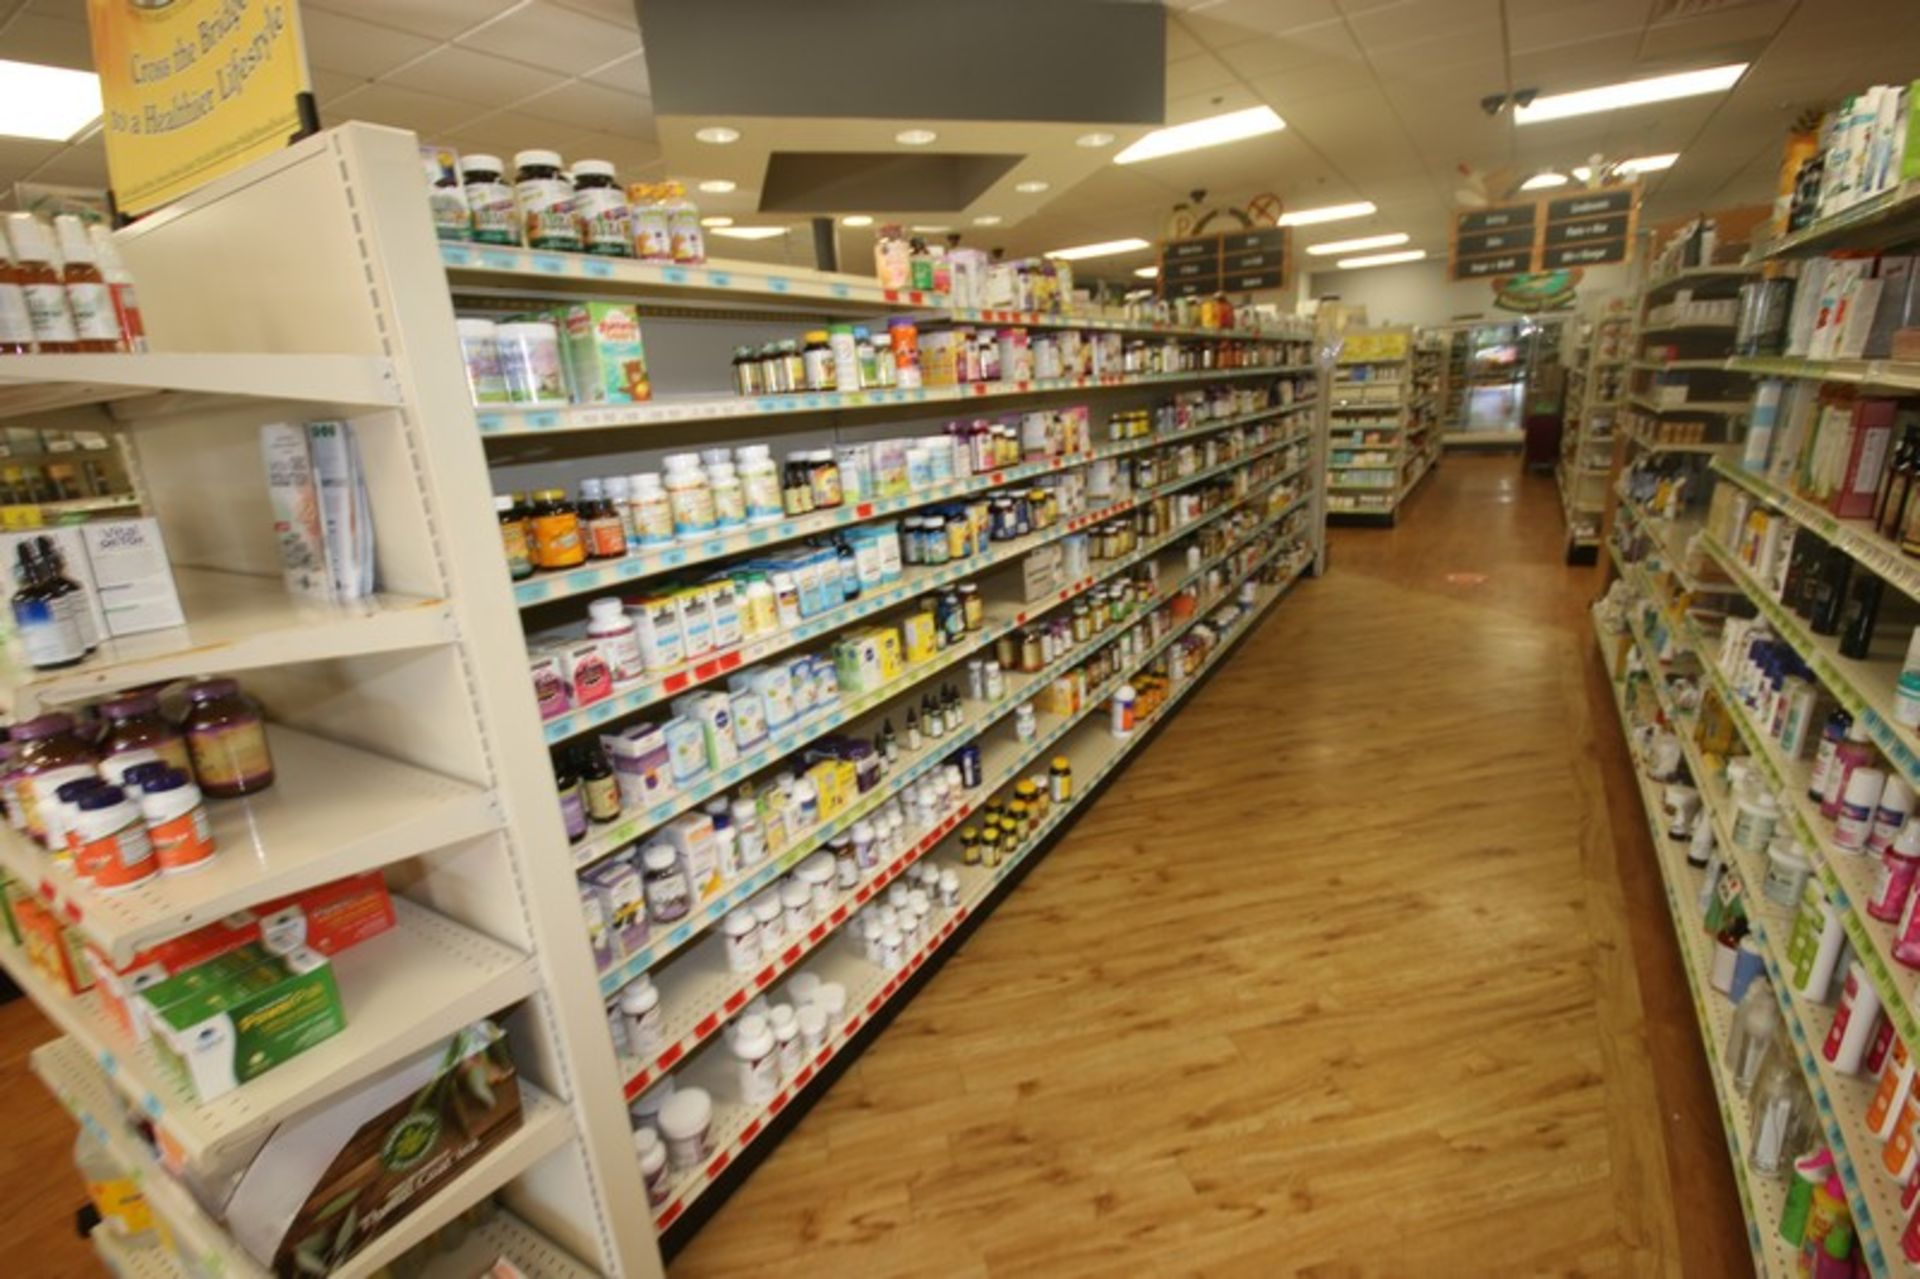 Feet of Double Sided Super Market Shelving, with Shelves (NOTE: SOLD BY THE FOOT) (Located in - Image 2 of 4